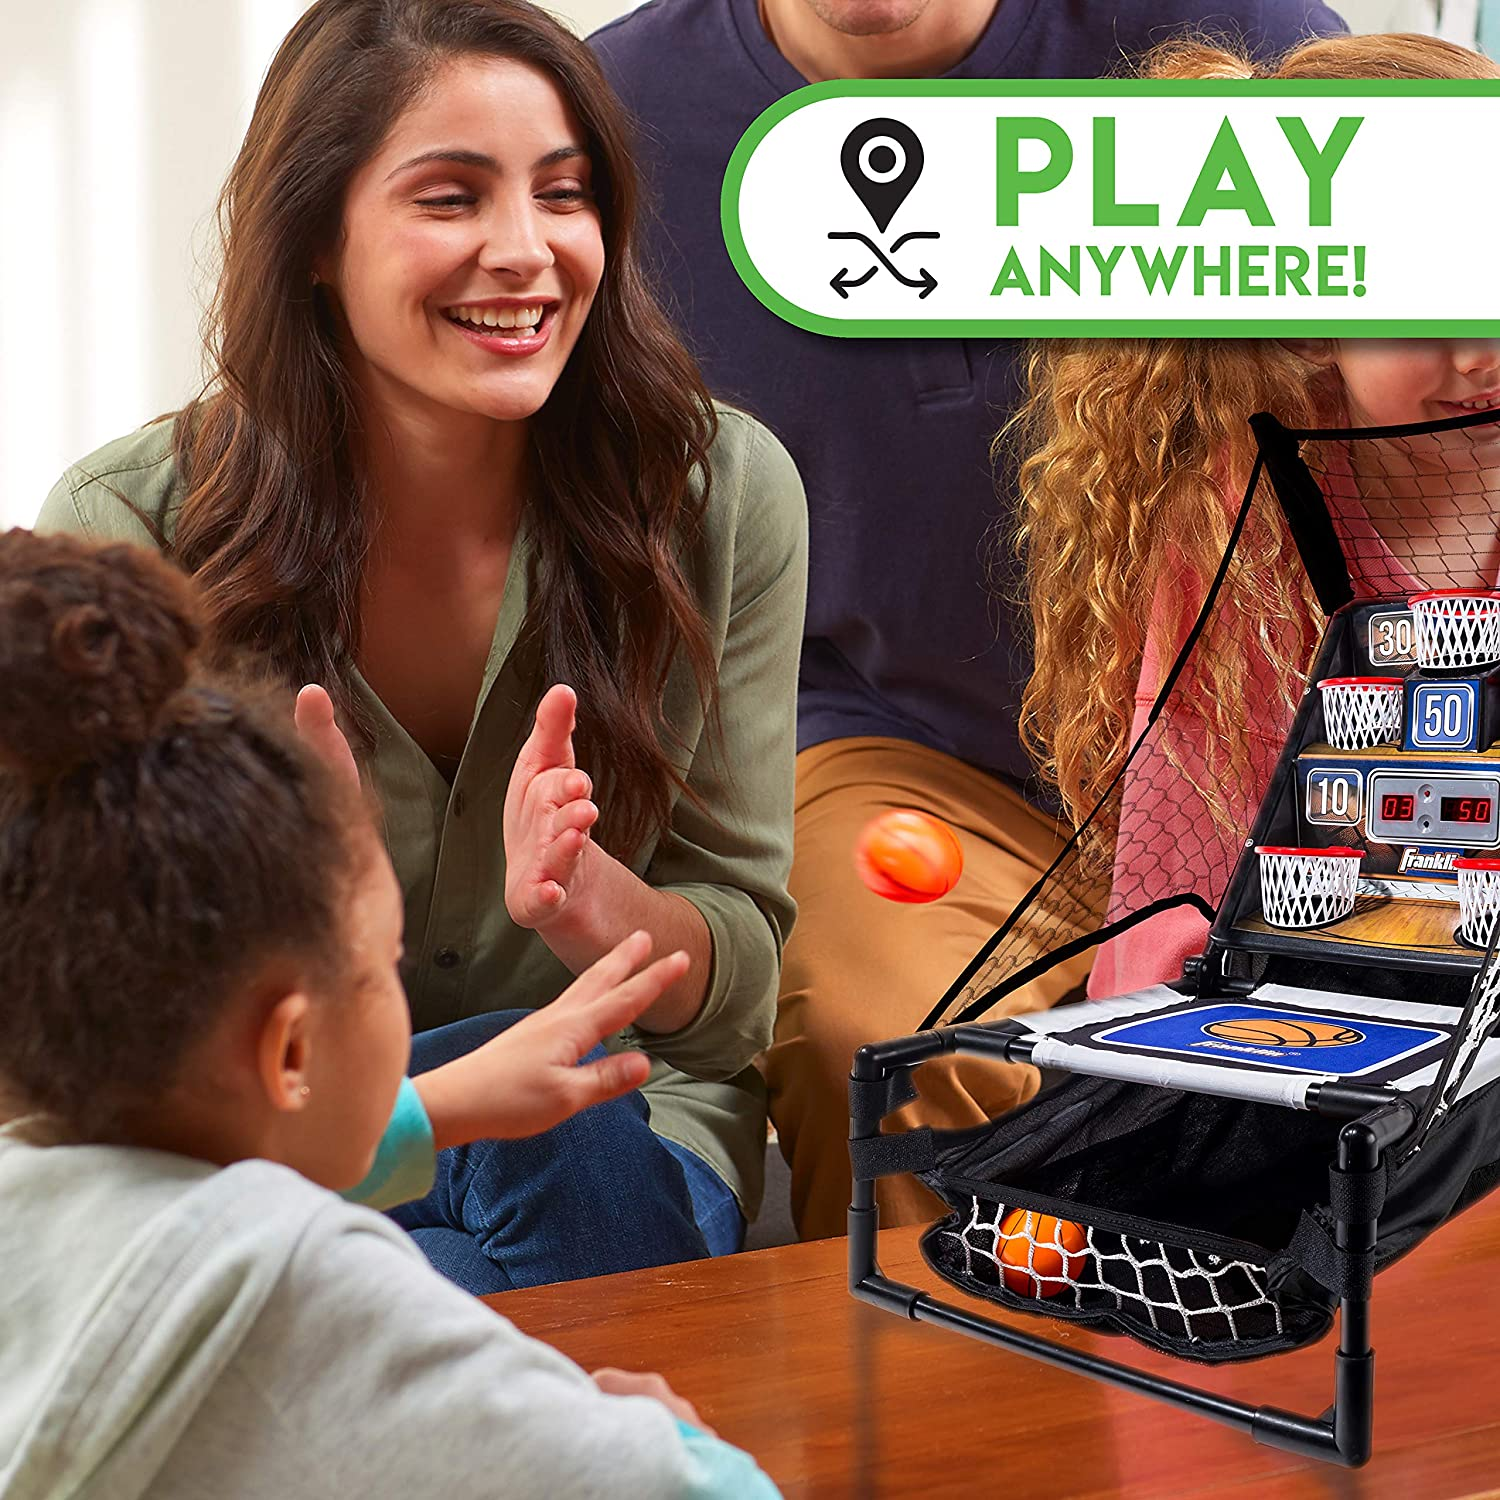 Franklin Sports Basketball Arcade Game - Table Top Bounce A Bucket Shootout- Indoor Electronic Basketball Game for Kids, Black, 21 x 11 x 19-Inch: Sports & Outdoors